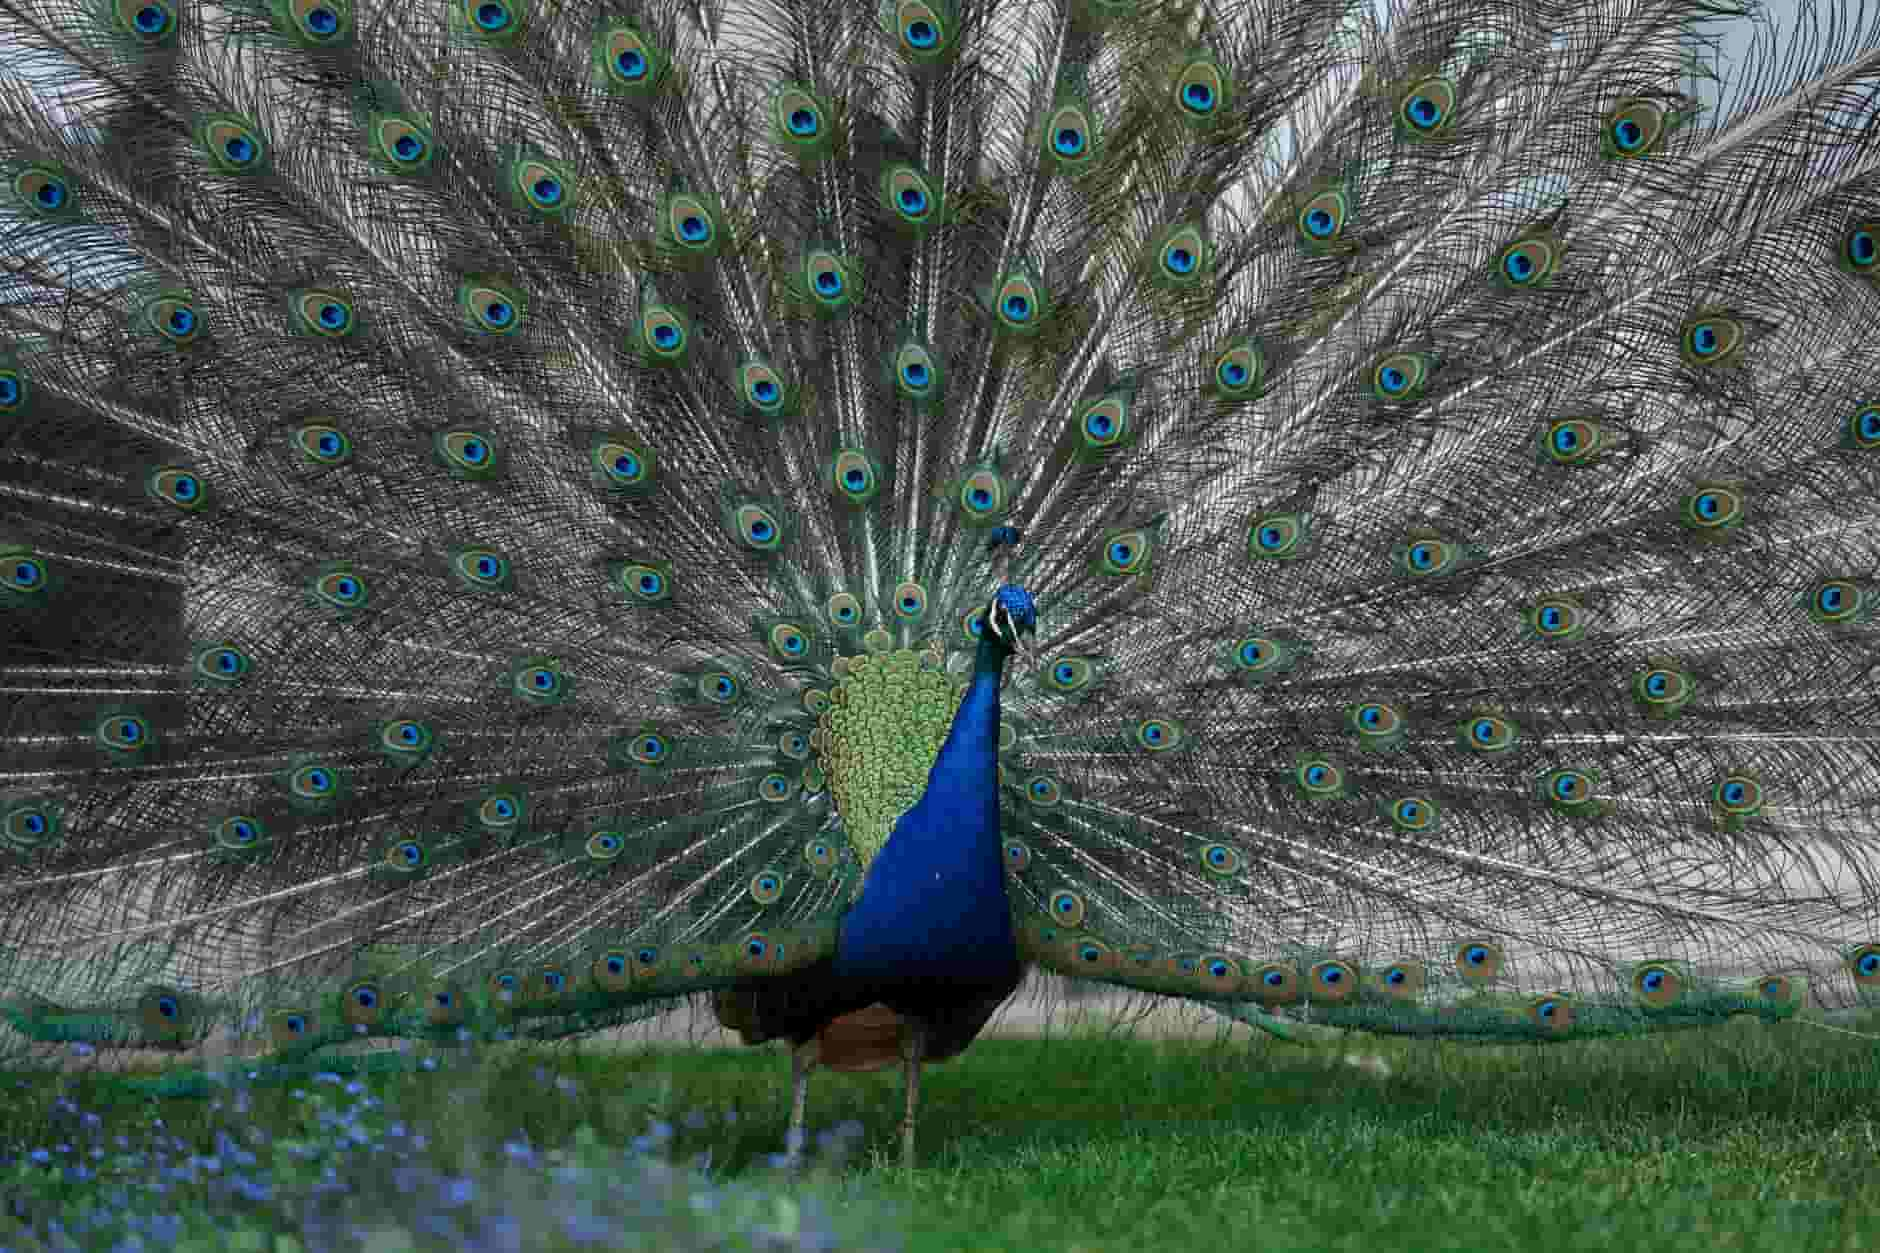 The peacock is a beautiful bird that is also the national bird of India.